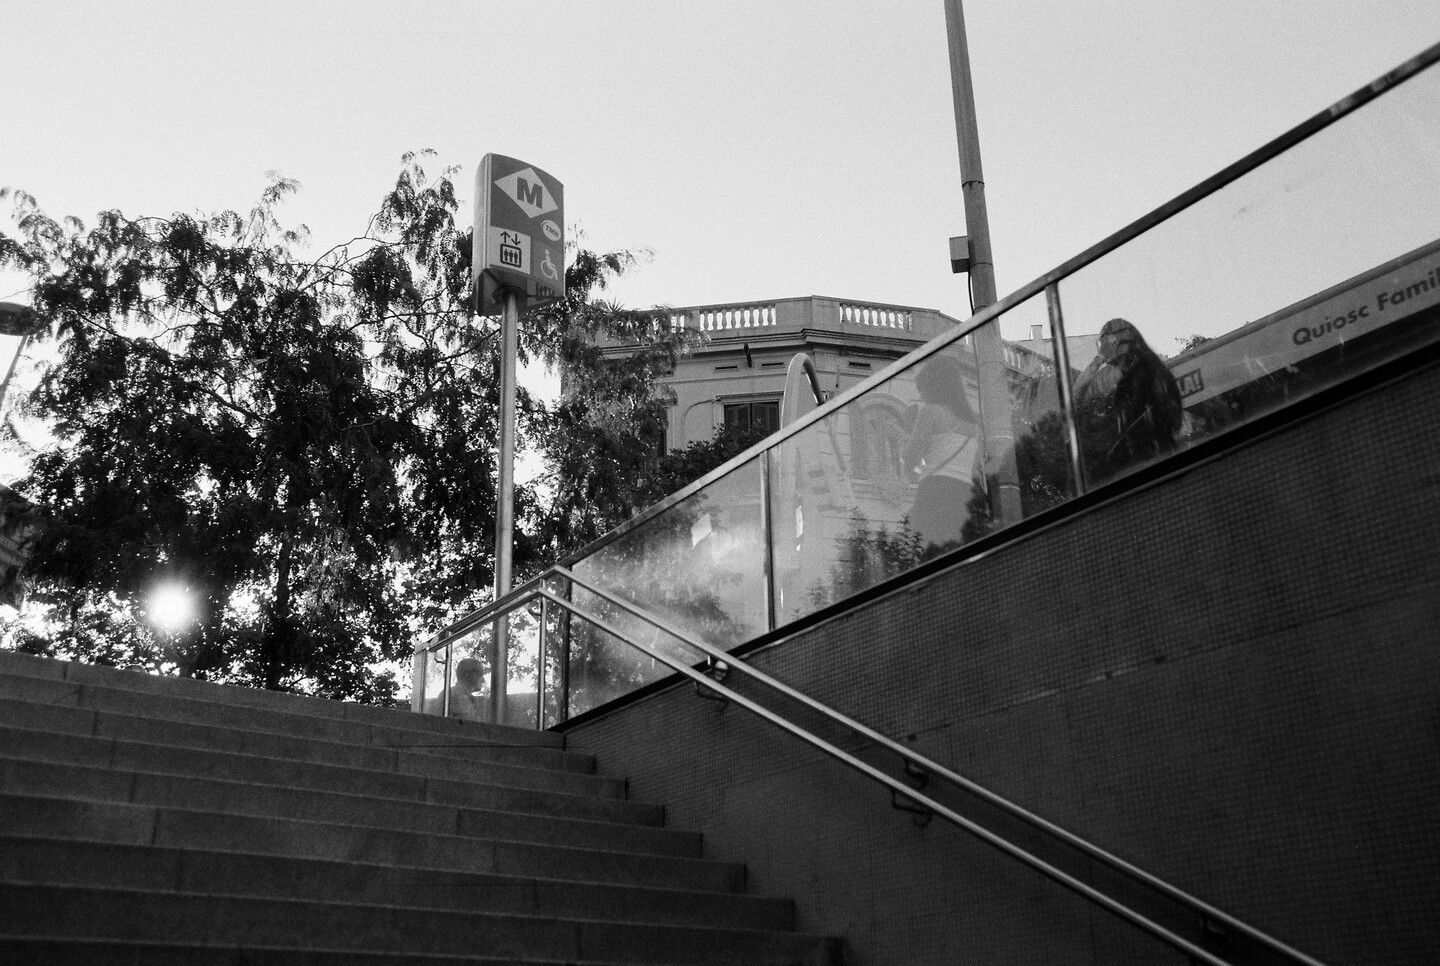 Sep 22, 2019 - Barcelona in Black and White: 5